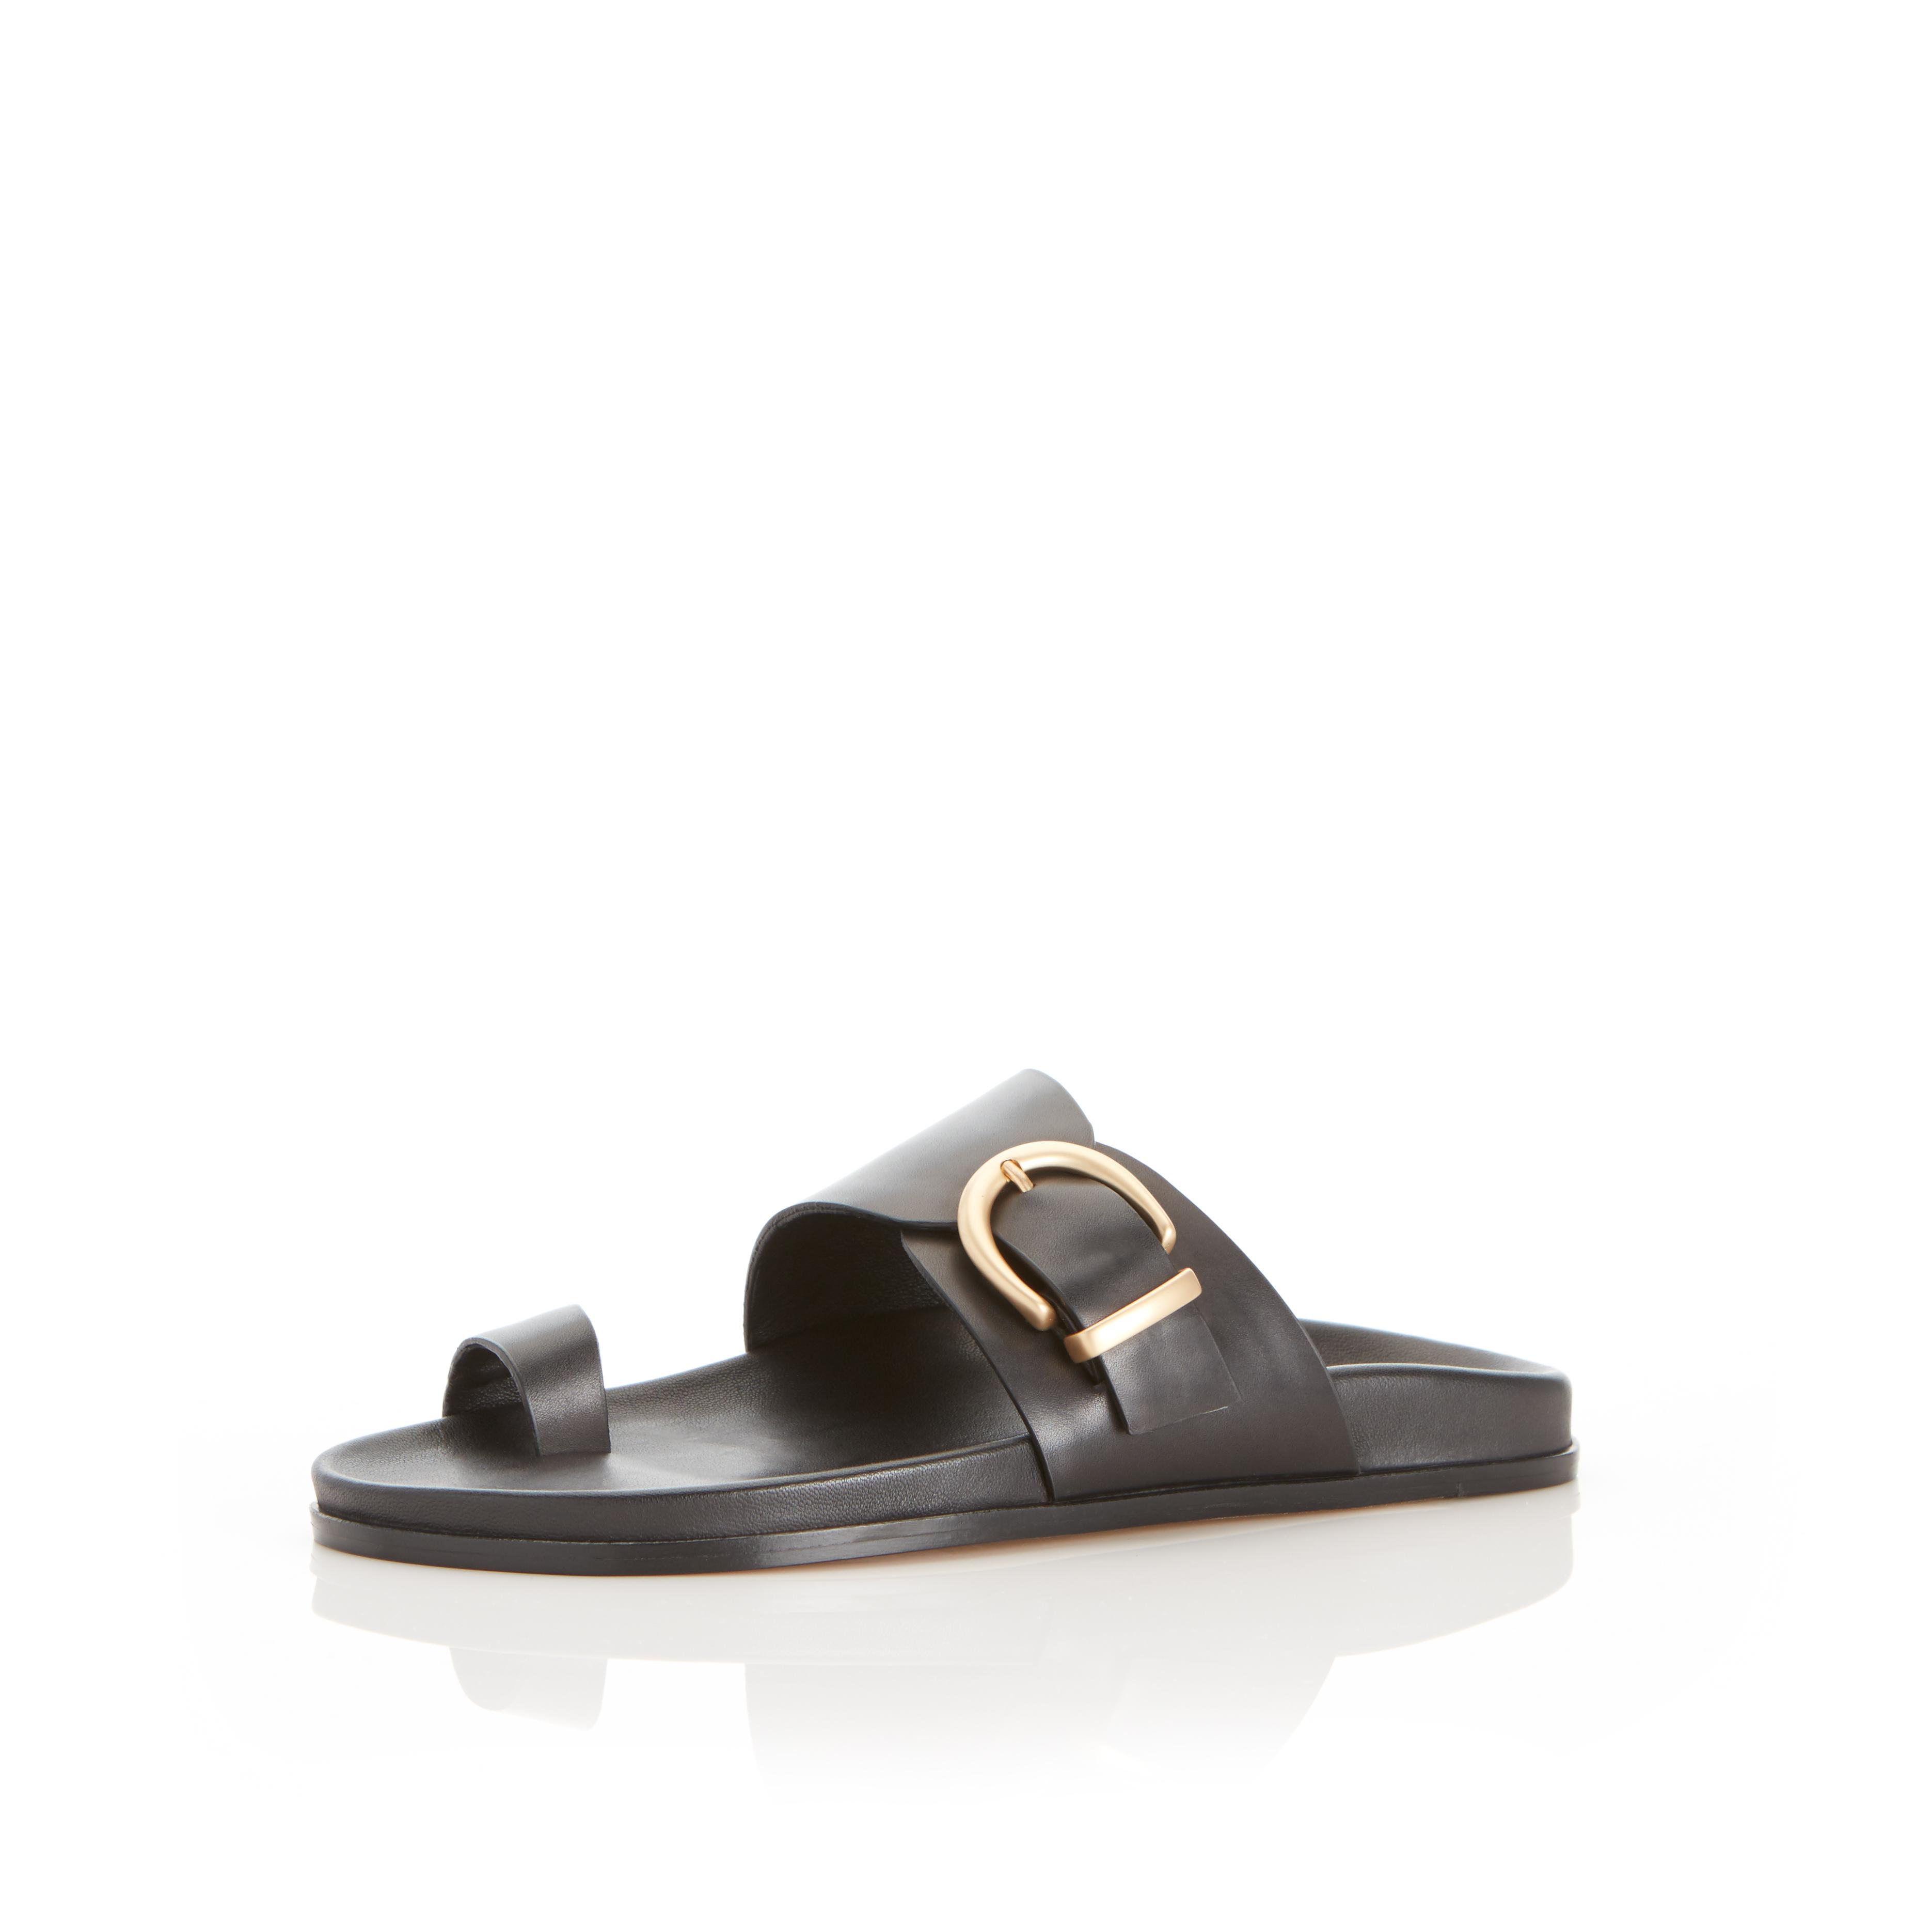 Cyrus   Leather Slide Sandal with Contoured Footbed 1